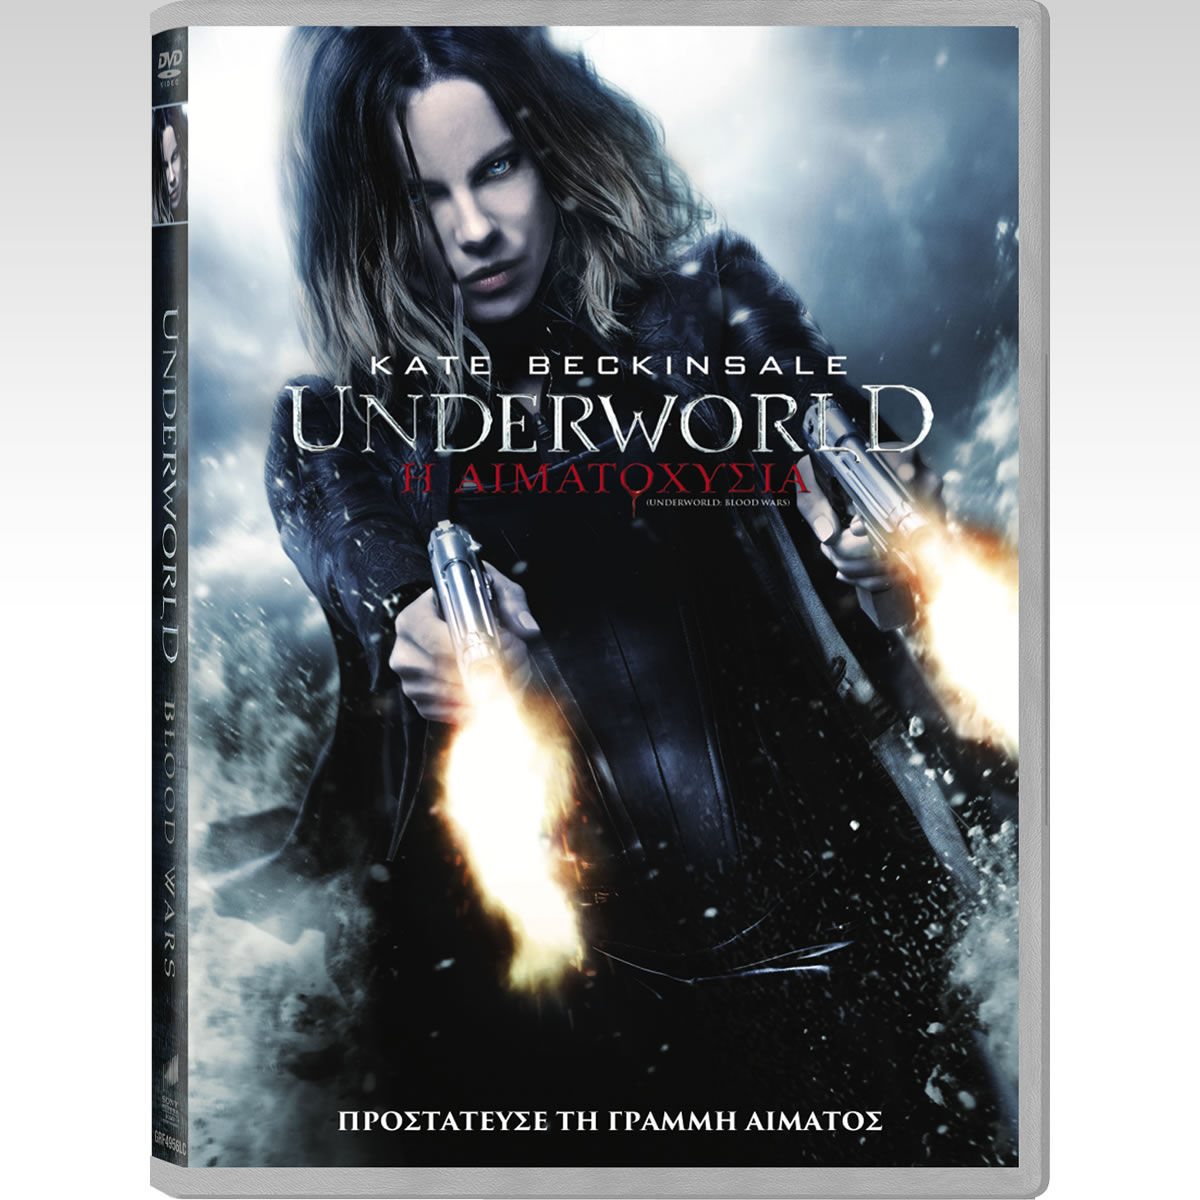 UNDERWORLD: BLOOD WARS - UNDERWORLD: Η ΑΙΜΑΤΟΧΥΣΙΑ (DVD)